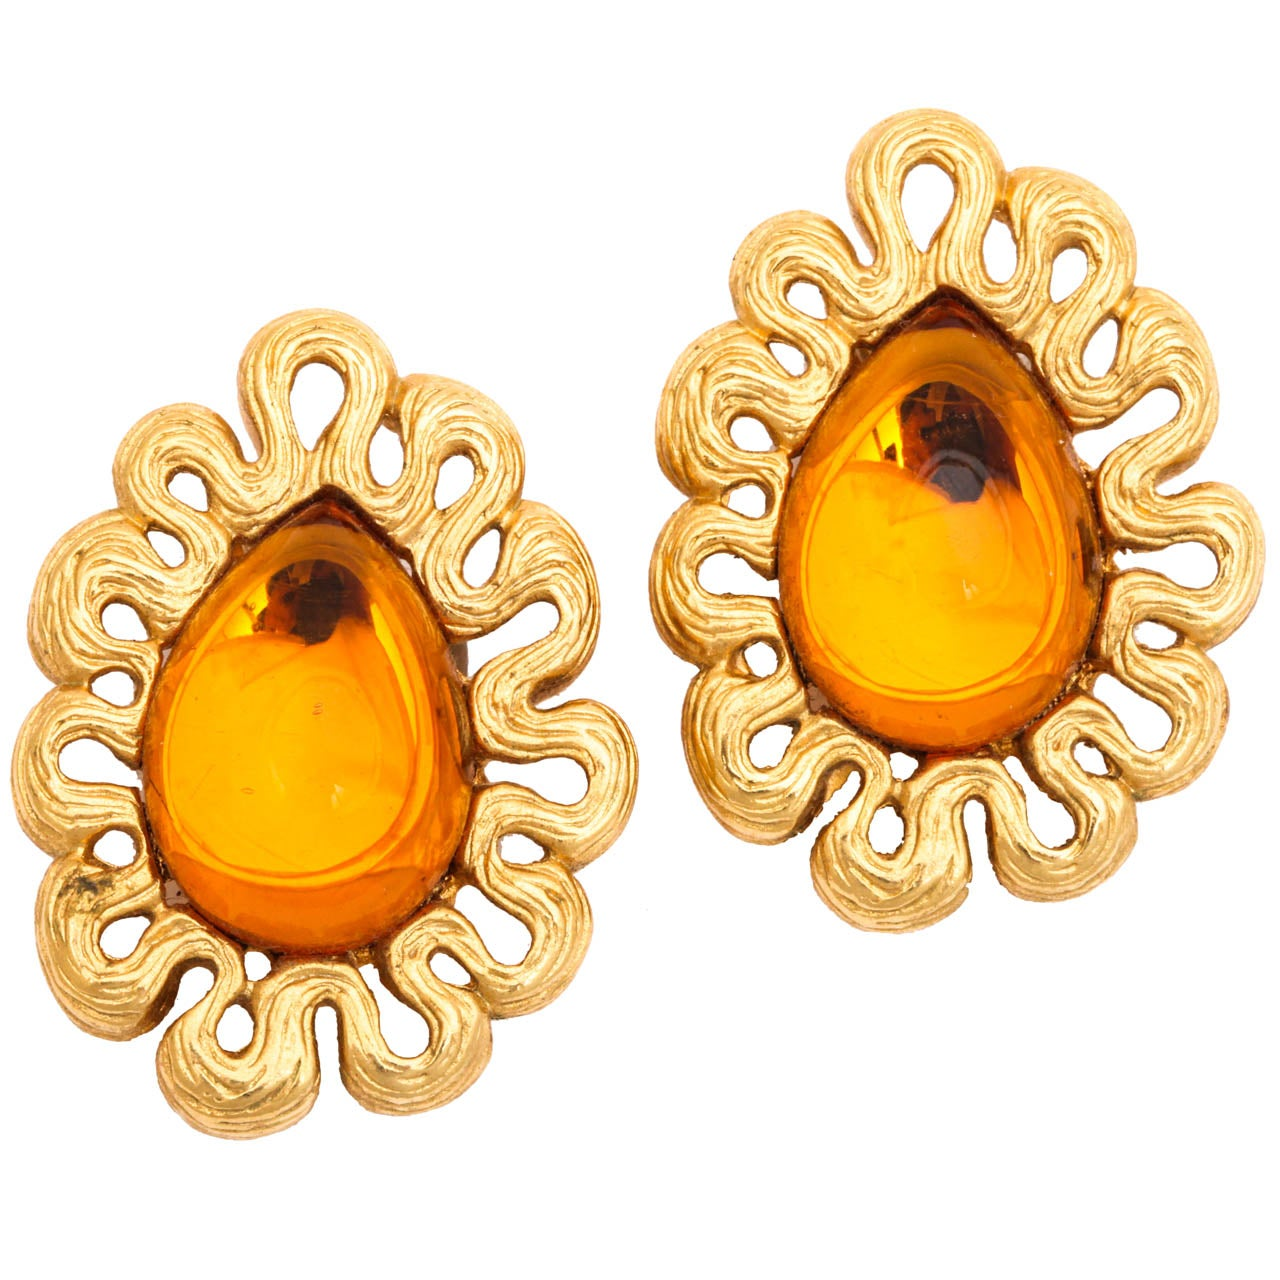 Givenchy Amber and Goldtone Earrings